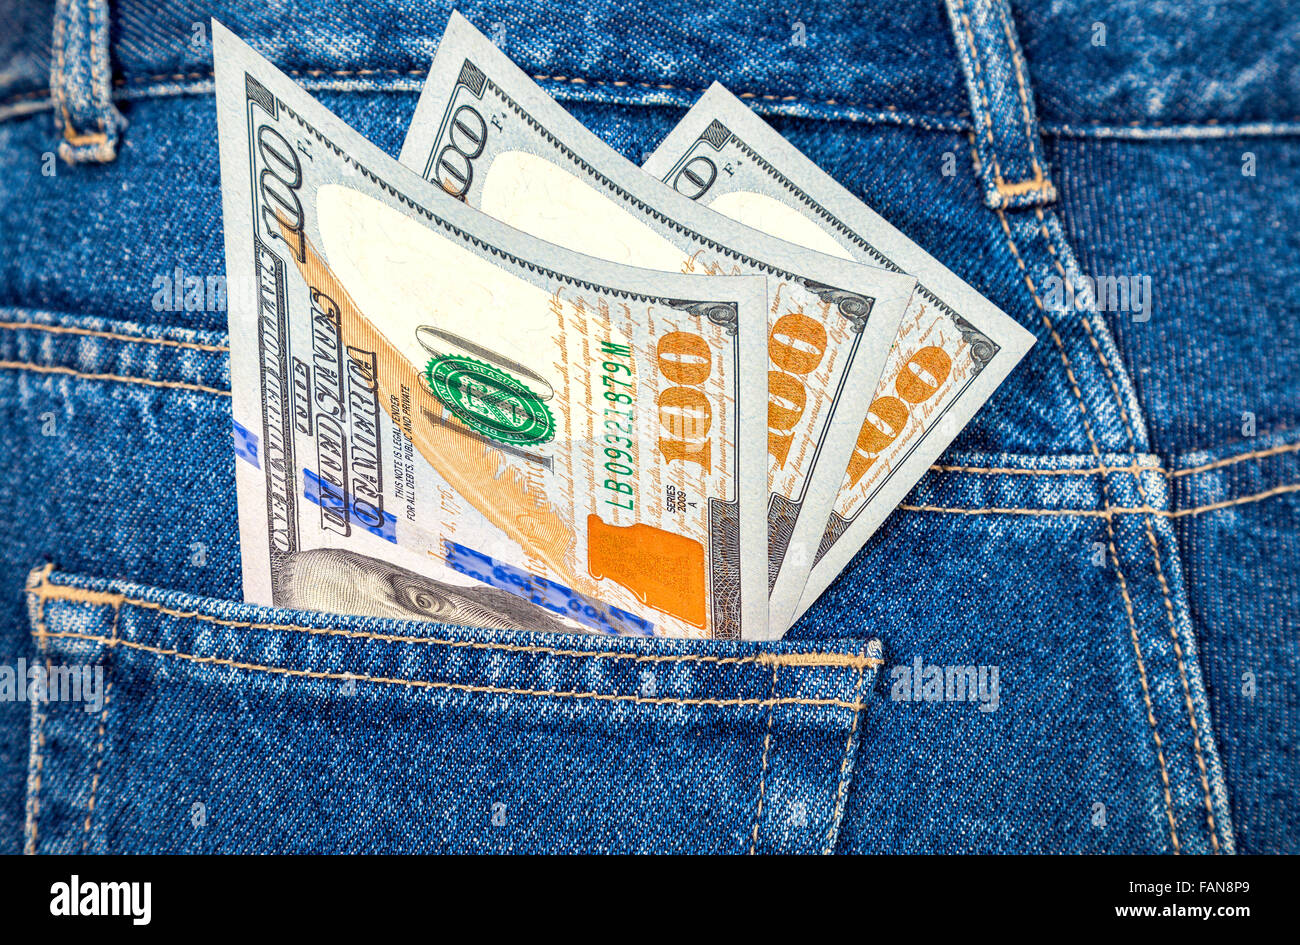 Banknotes of one hundred U. S. dollars bill sticking out of the back jeans pocket - Stock Image